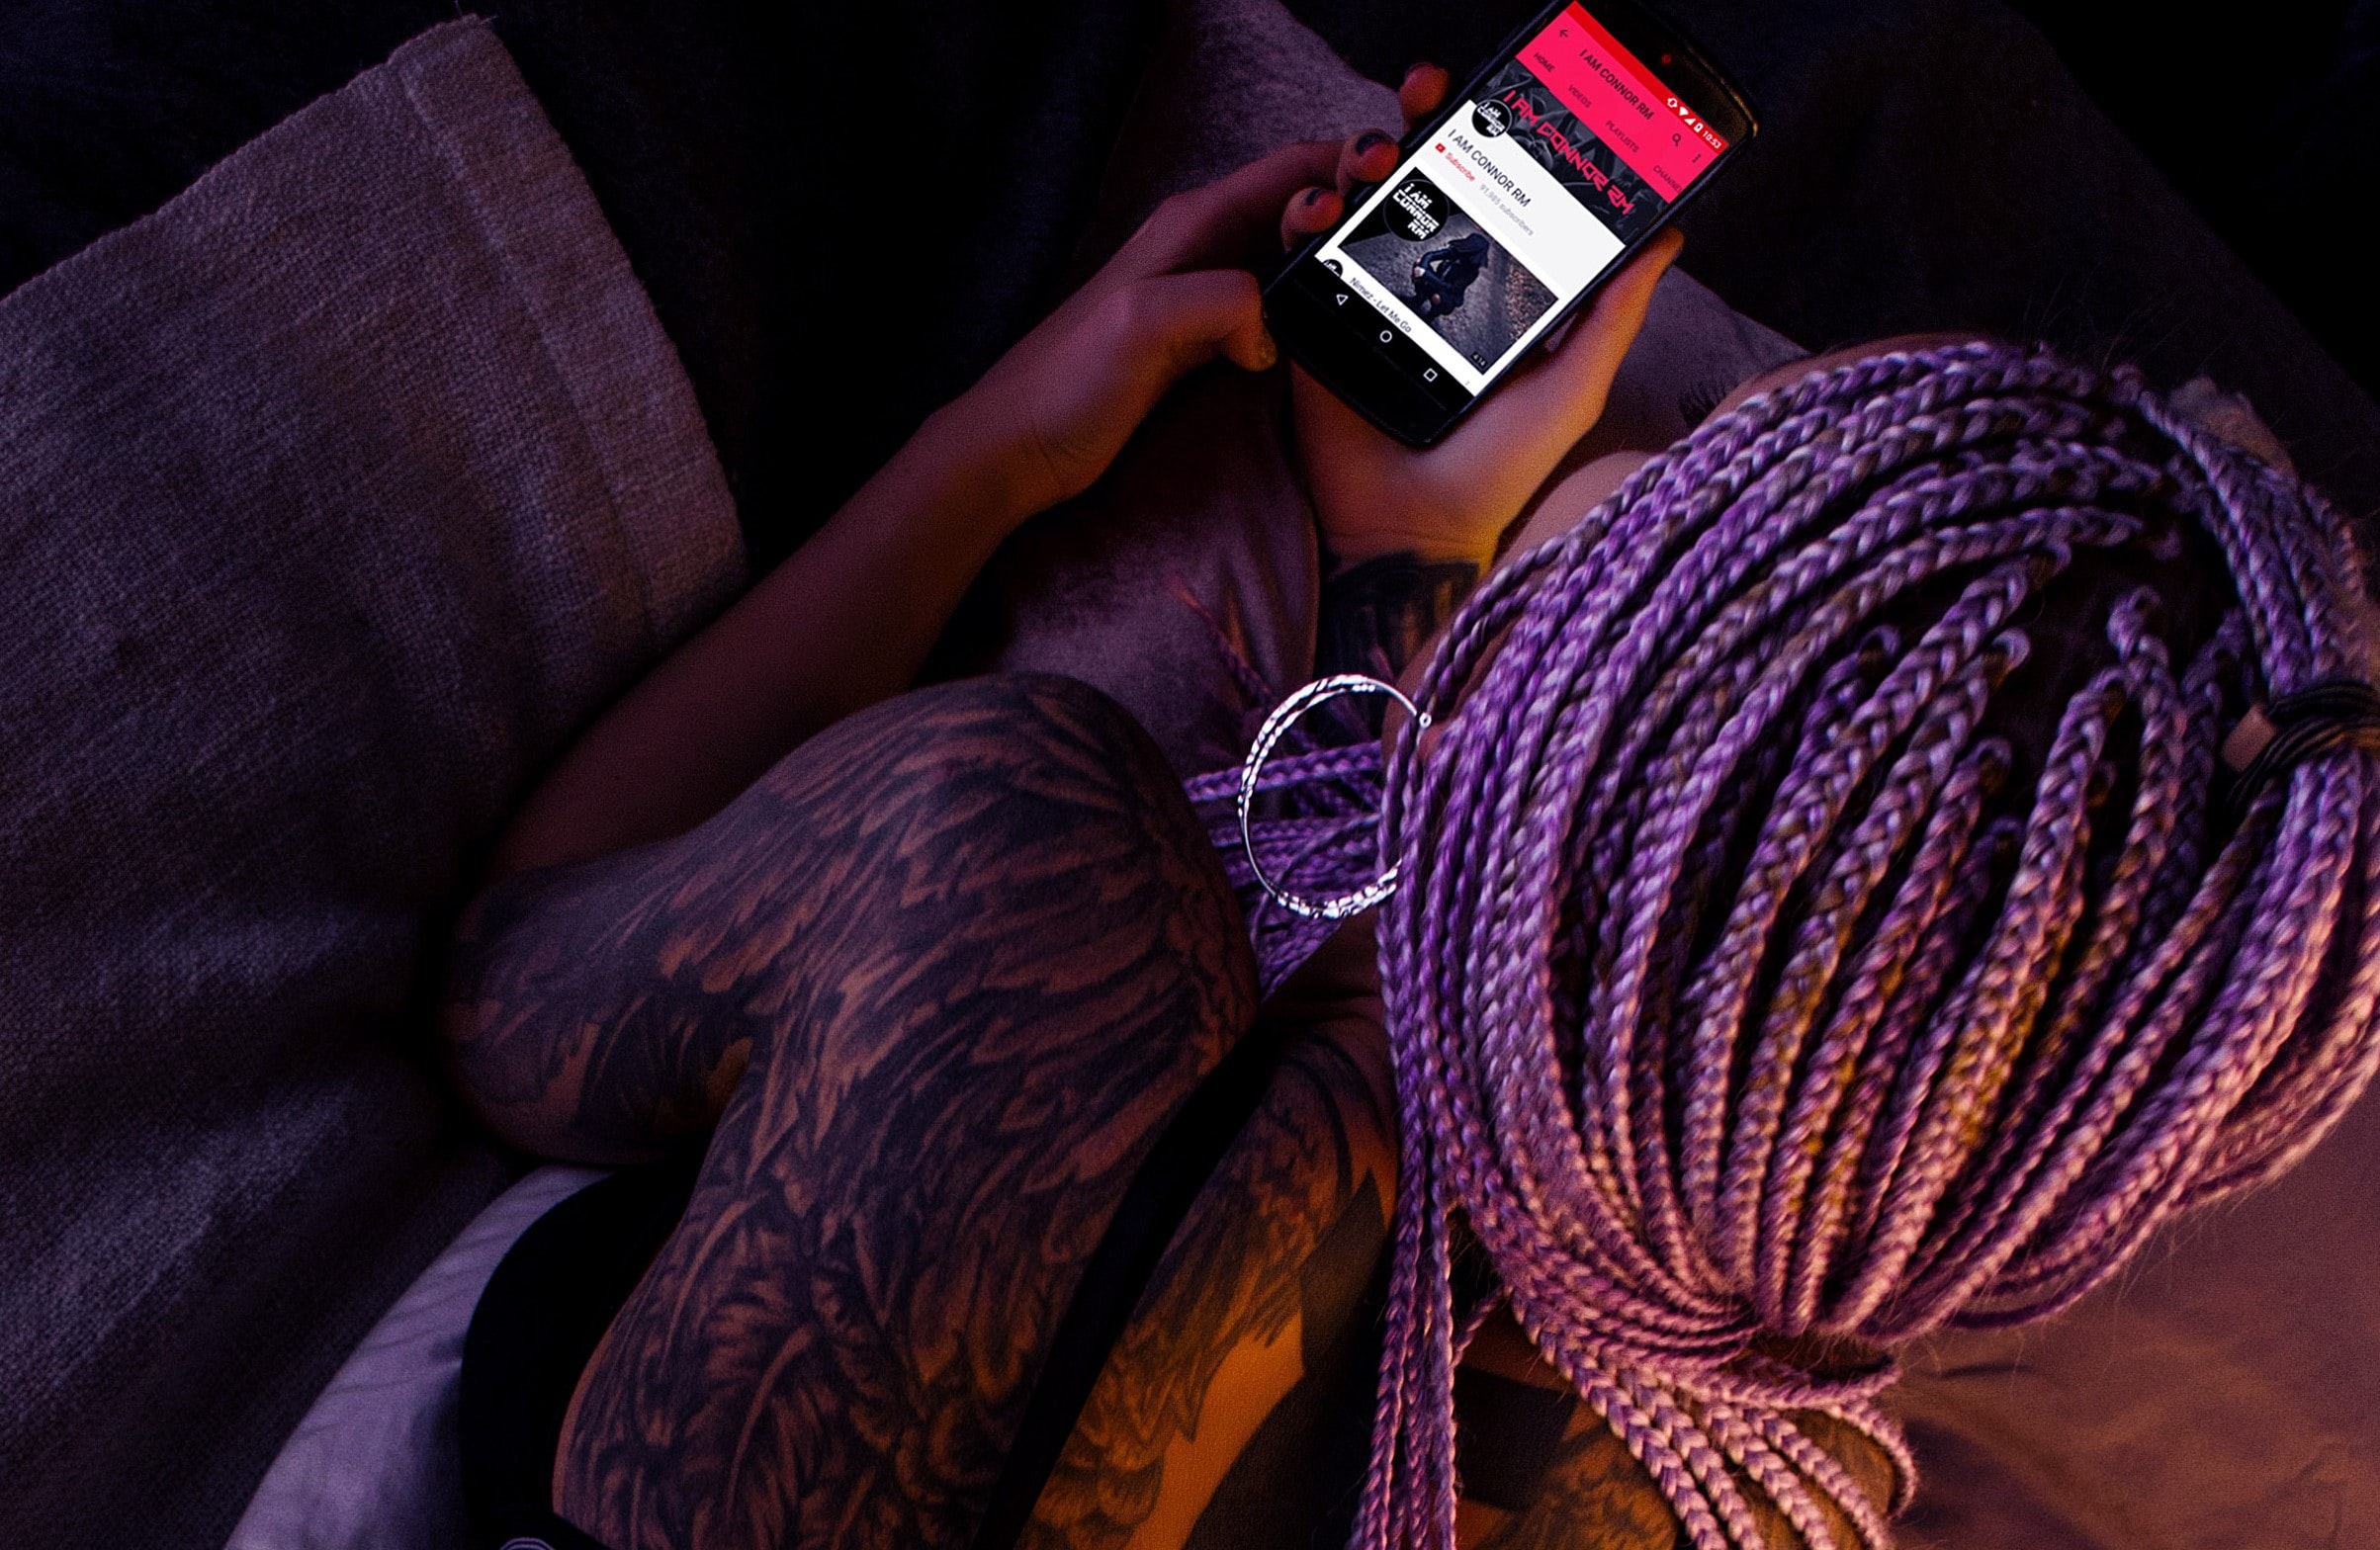 A woman in purple dreadlocks with tattoos on her back looking at a music application on a phone